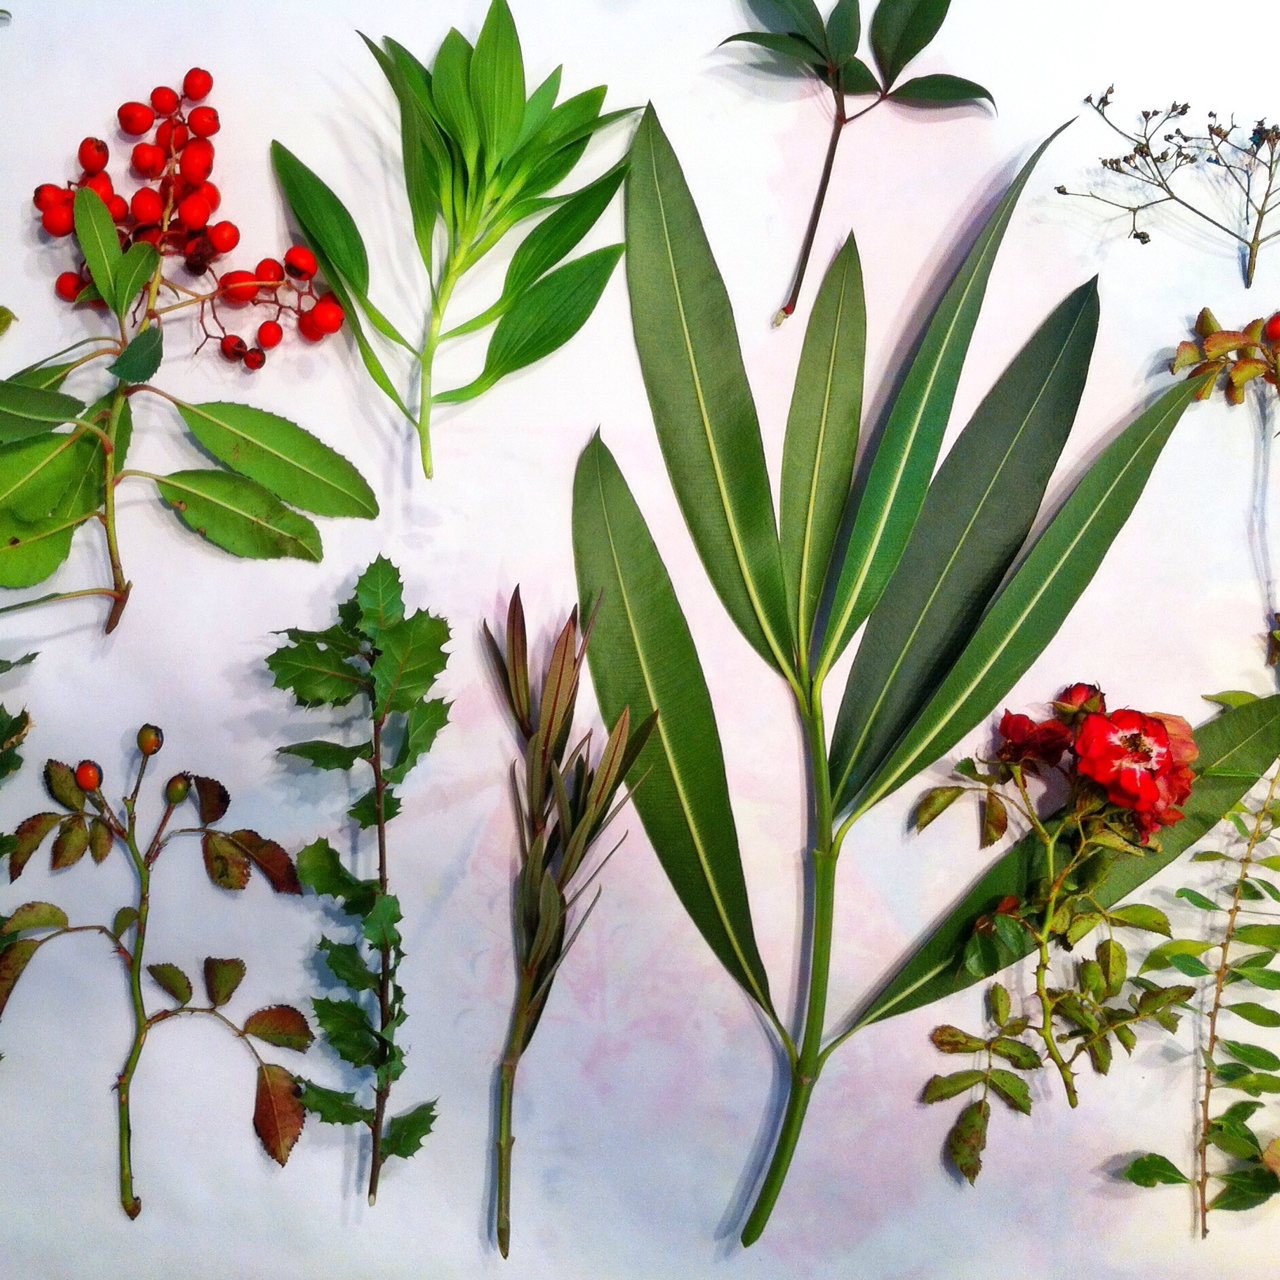 From left: Manzanita, rose, oak, alstromeria, oleander, nandina, and upper right, a sprig of creeping hydrangea